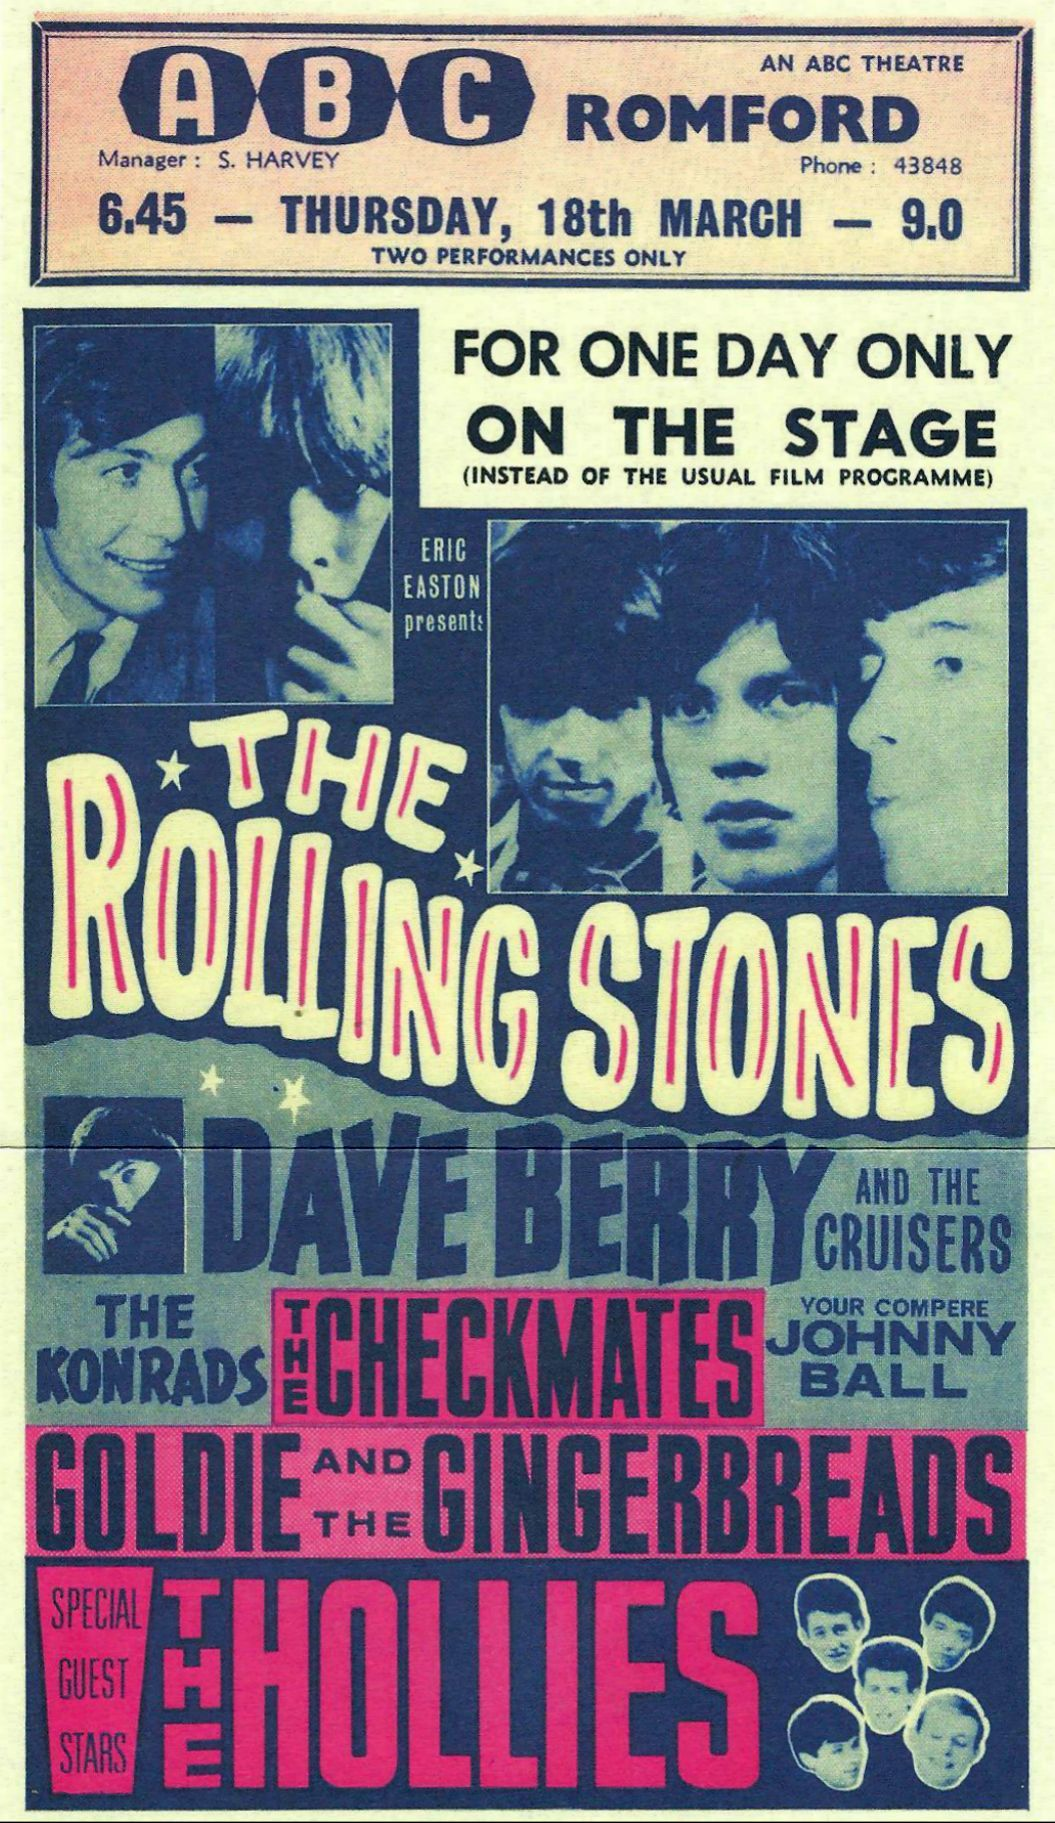 The Rolling Stones Concert Poster Featuring The Hollies